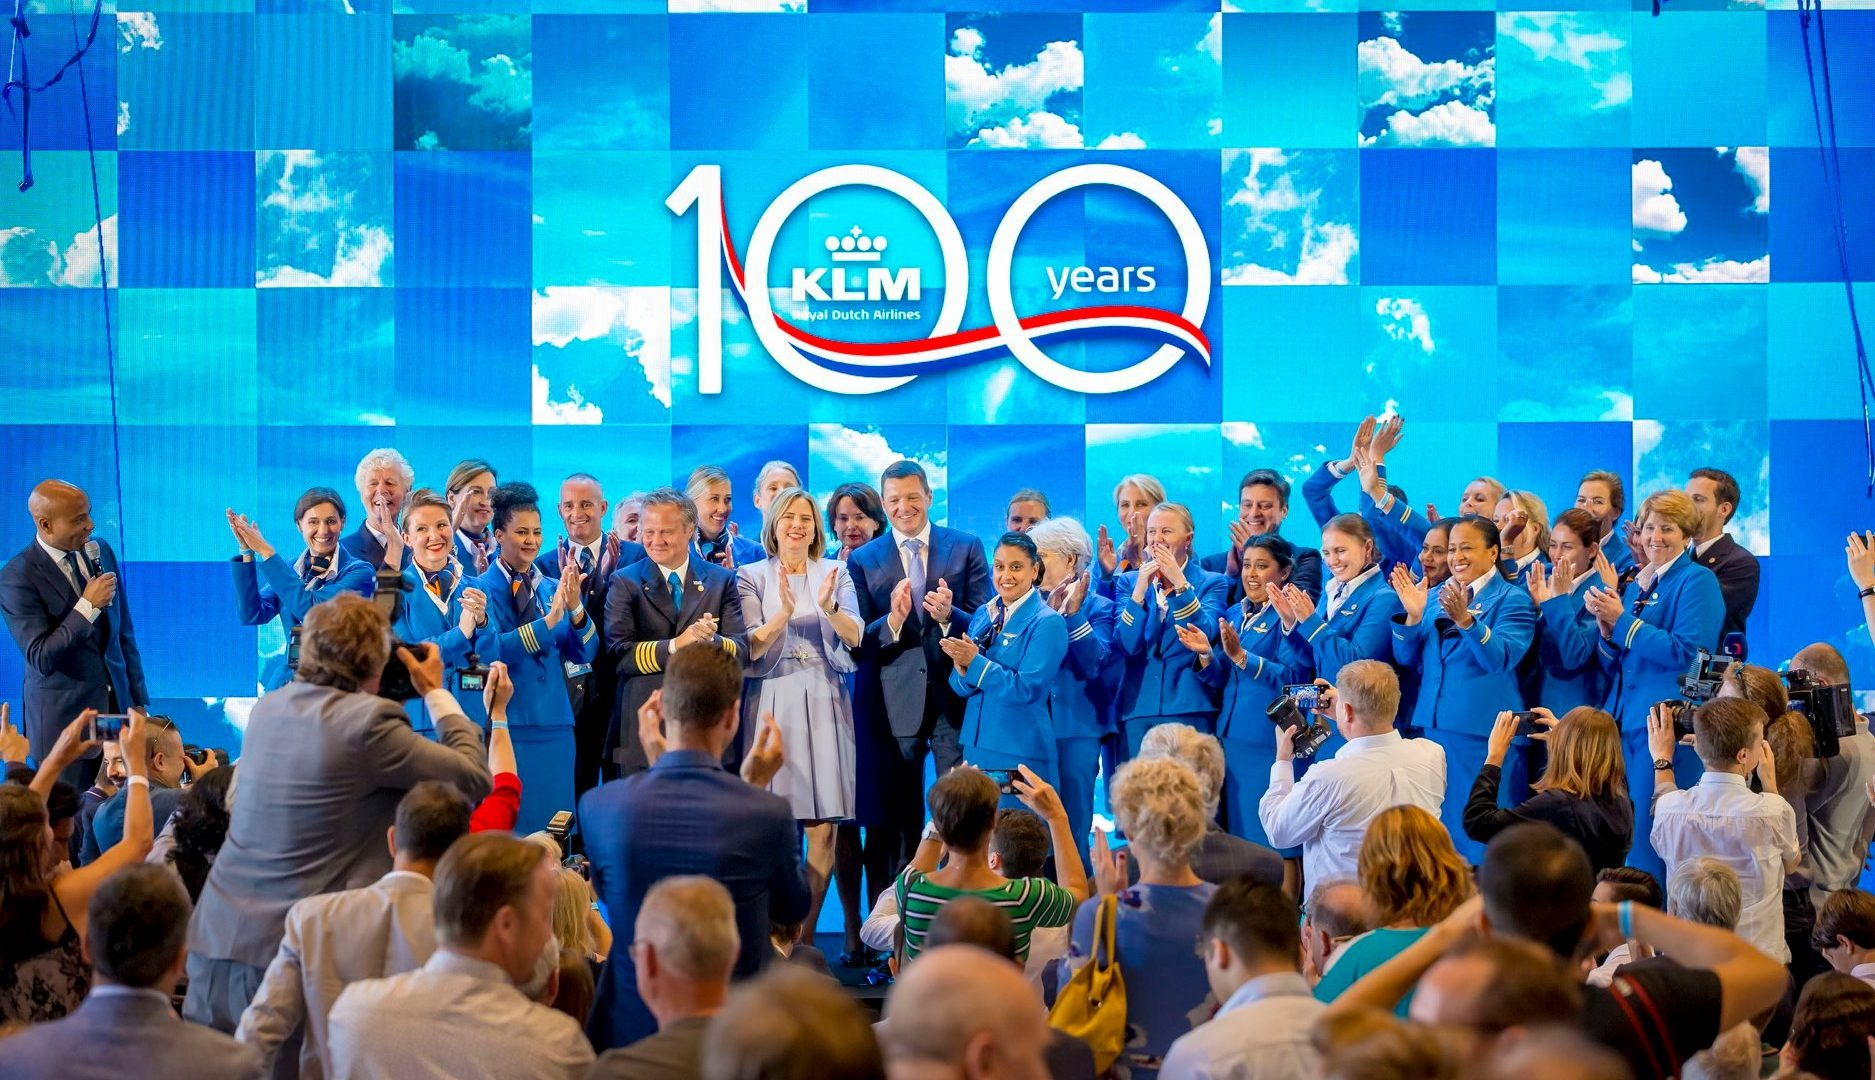 KLM 100 years